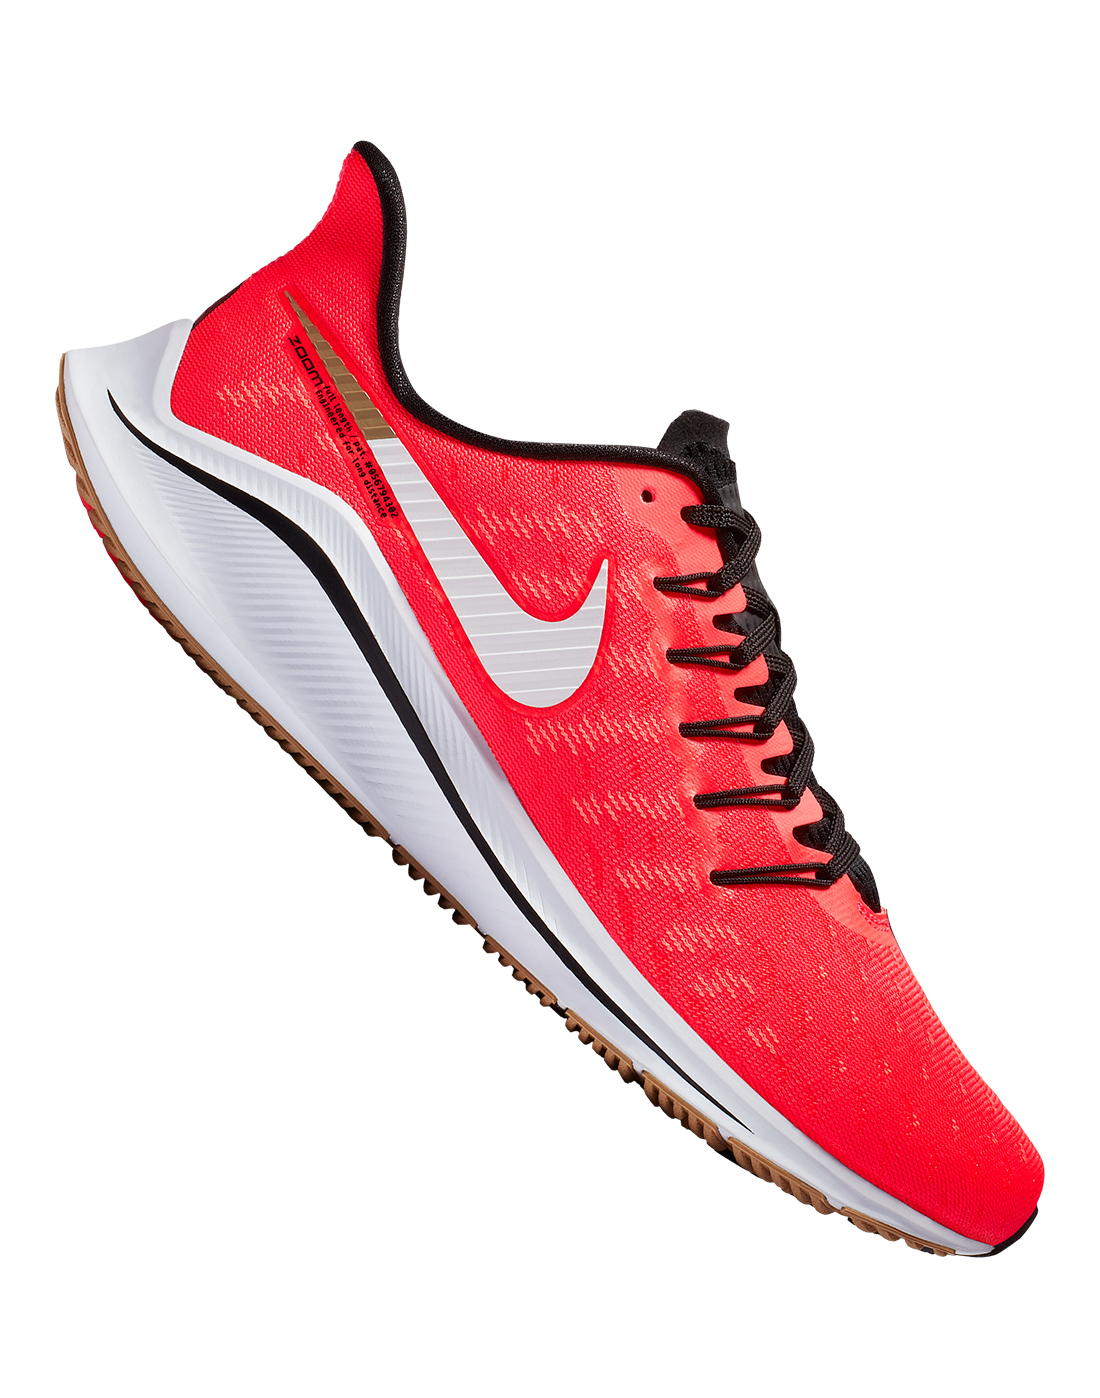 7acba87fdcd38 Men s Red Nike Air Zoom Vomero 14